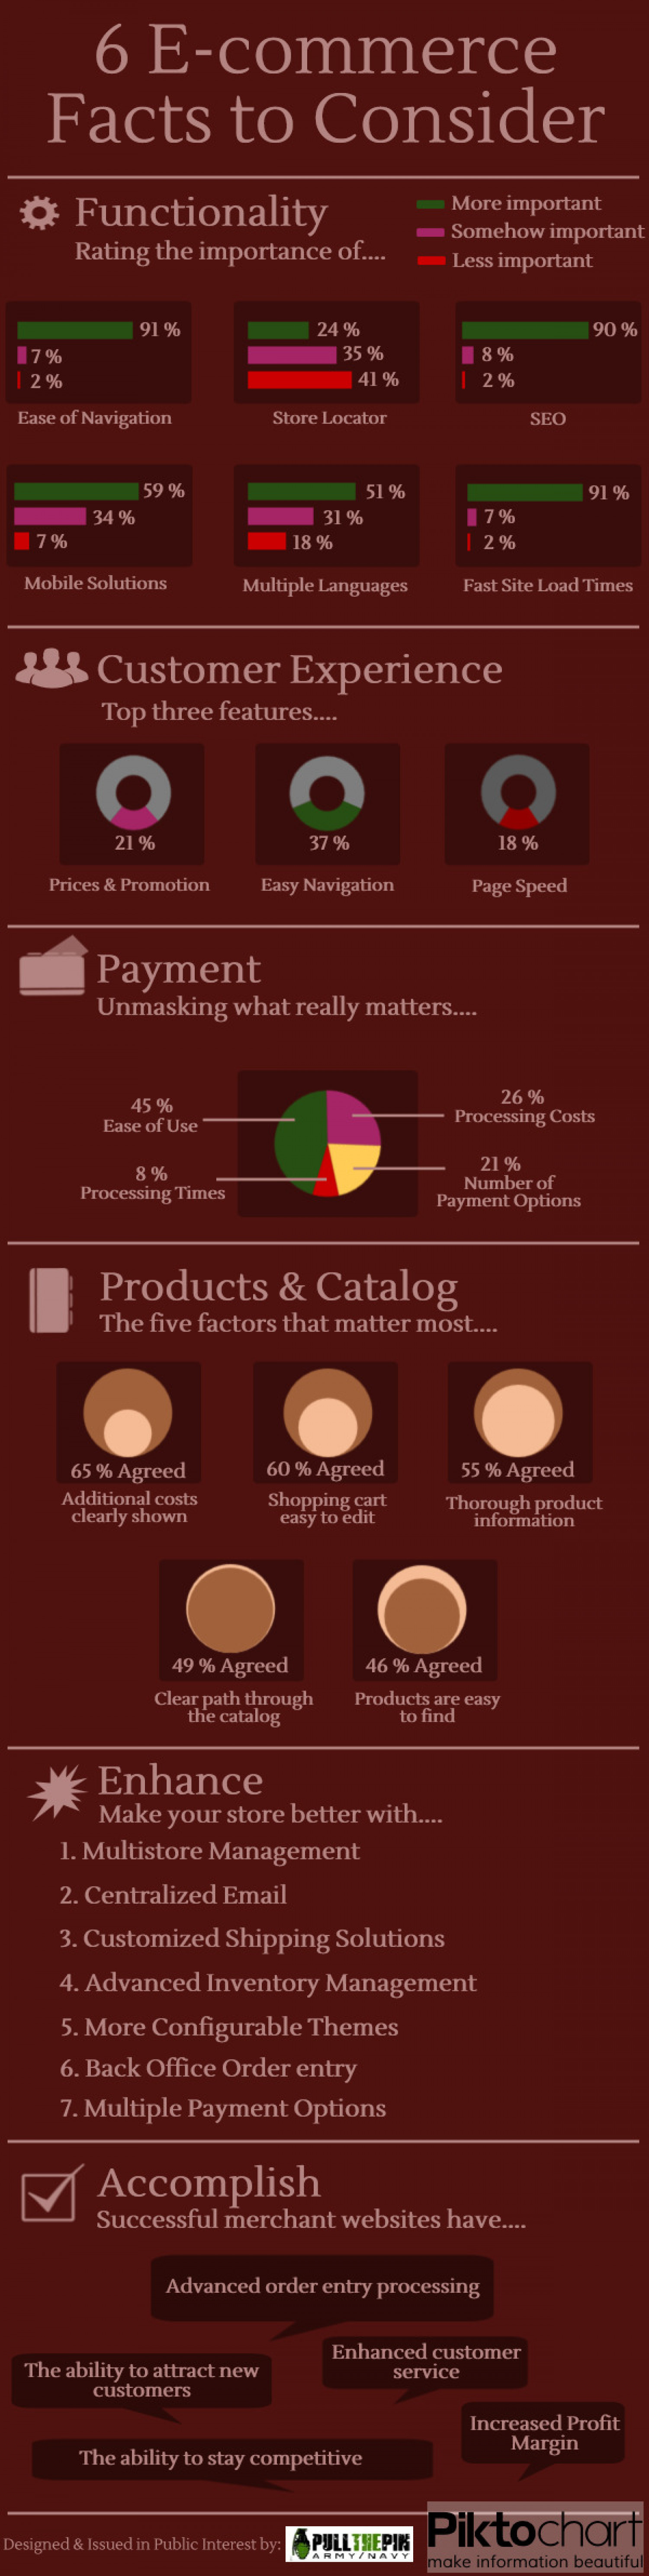 6 E-commerce Facts to Consider Infographic